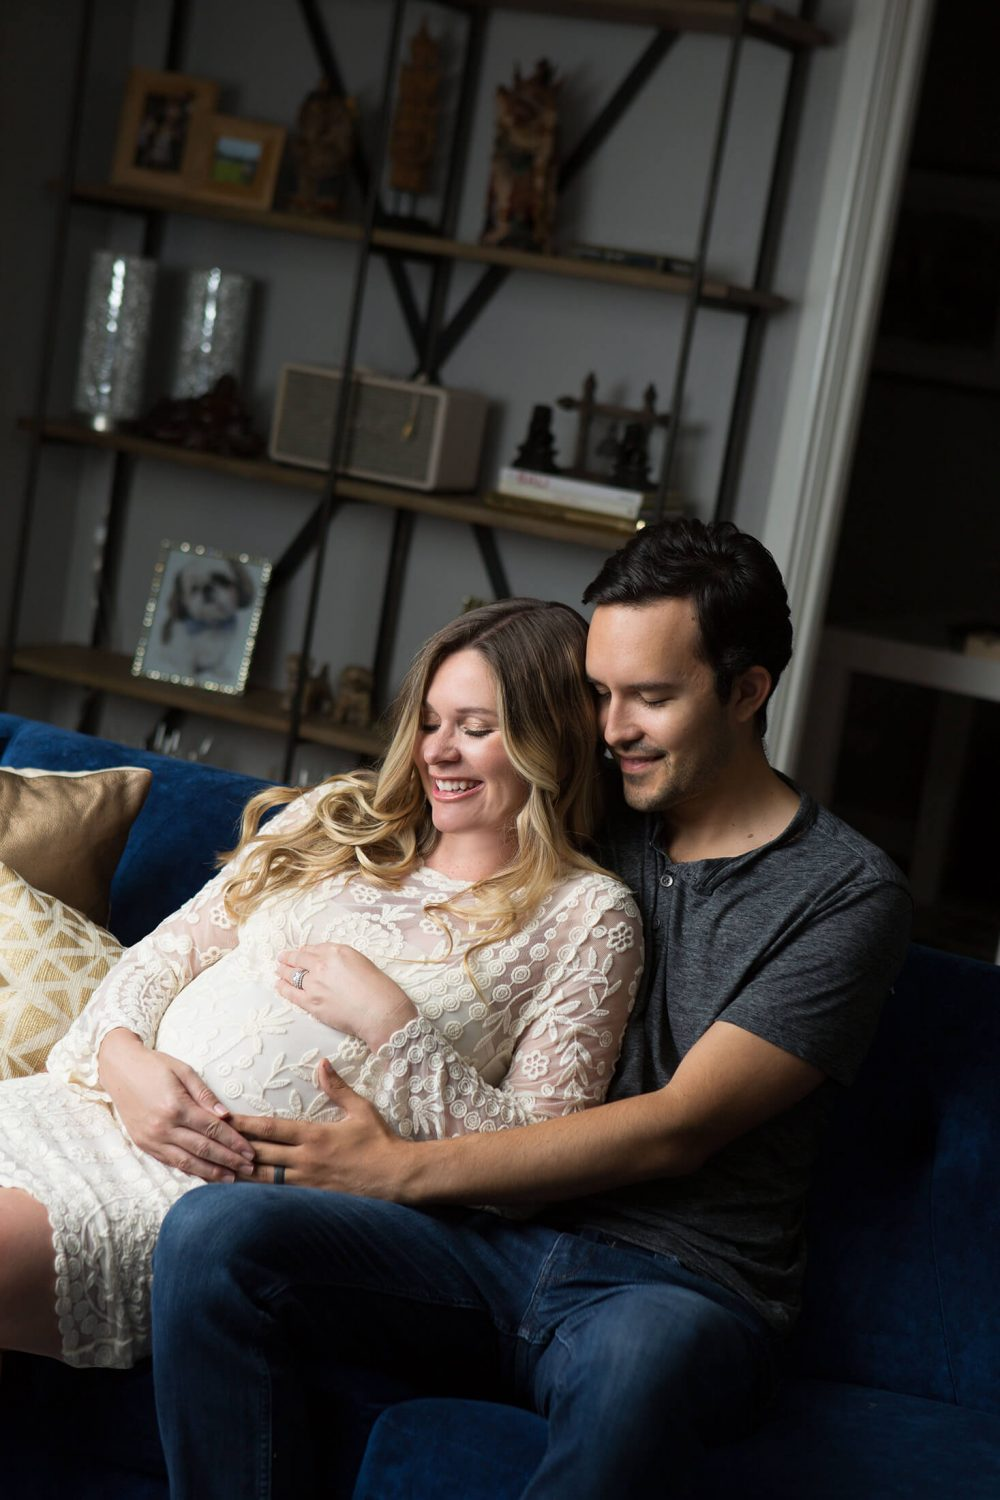 maternity session at home in lace dress Alamo Heights, Texas